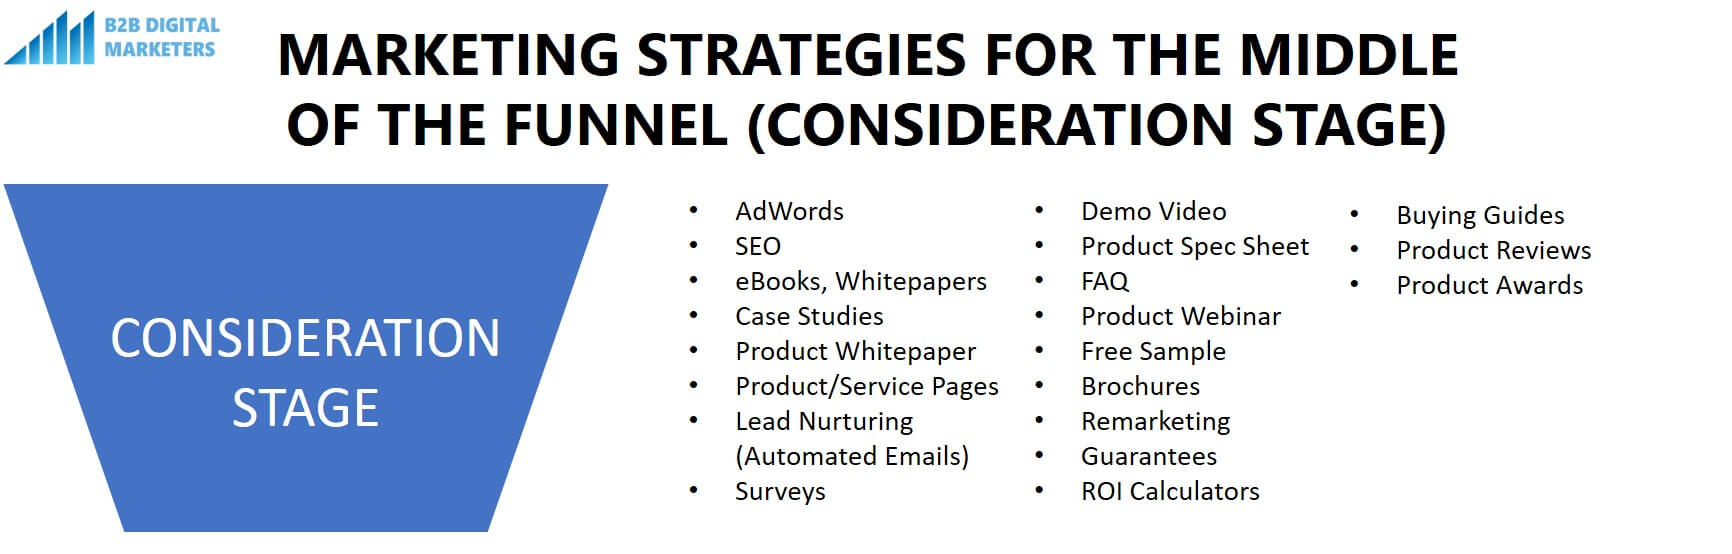 marketing strategies for middle of the funnel consideration stage